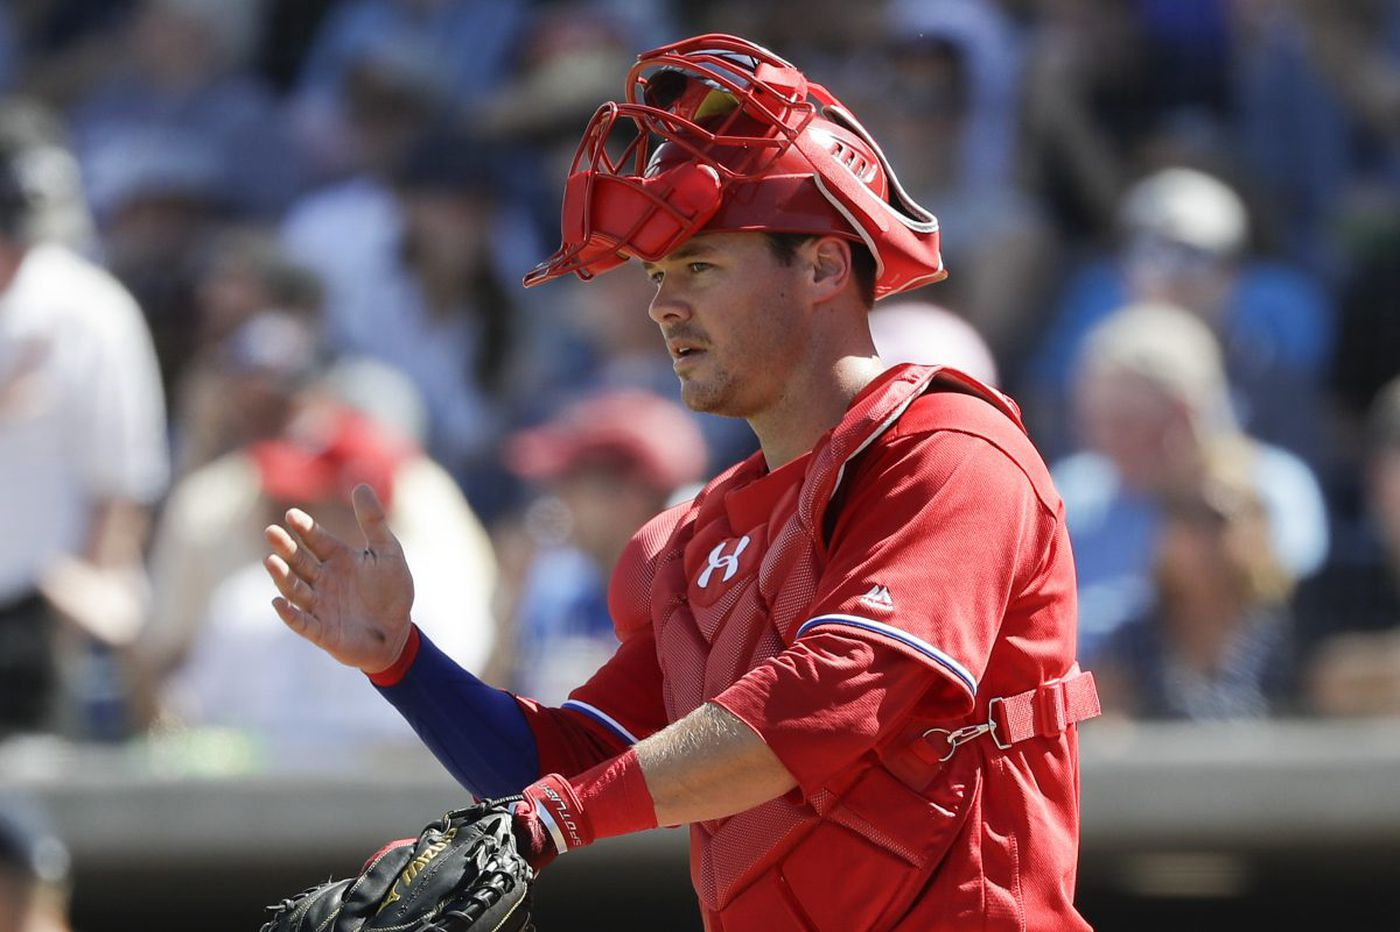 Andrew Knapp shows improvement behind the plate